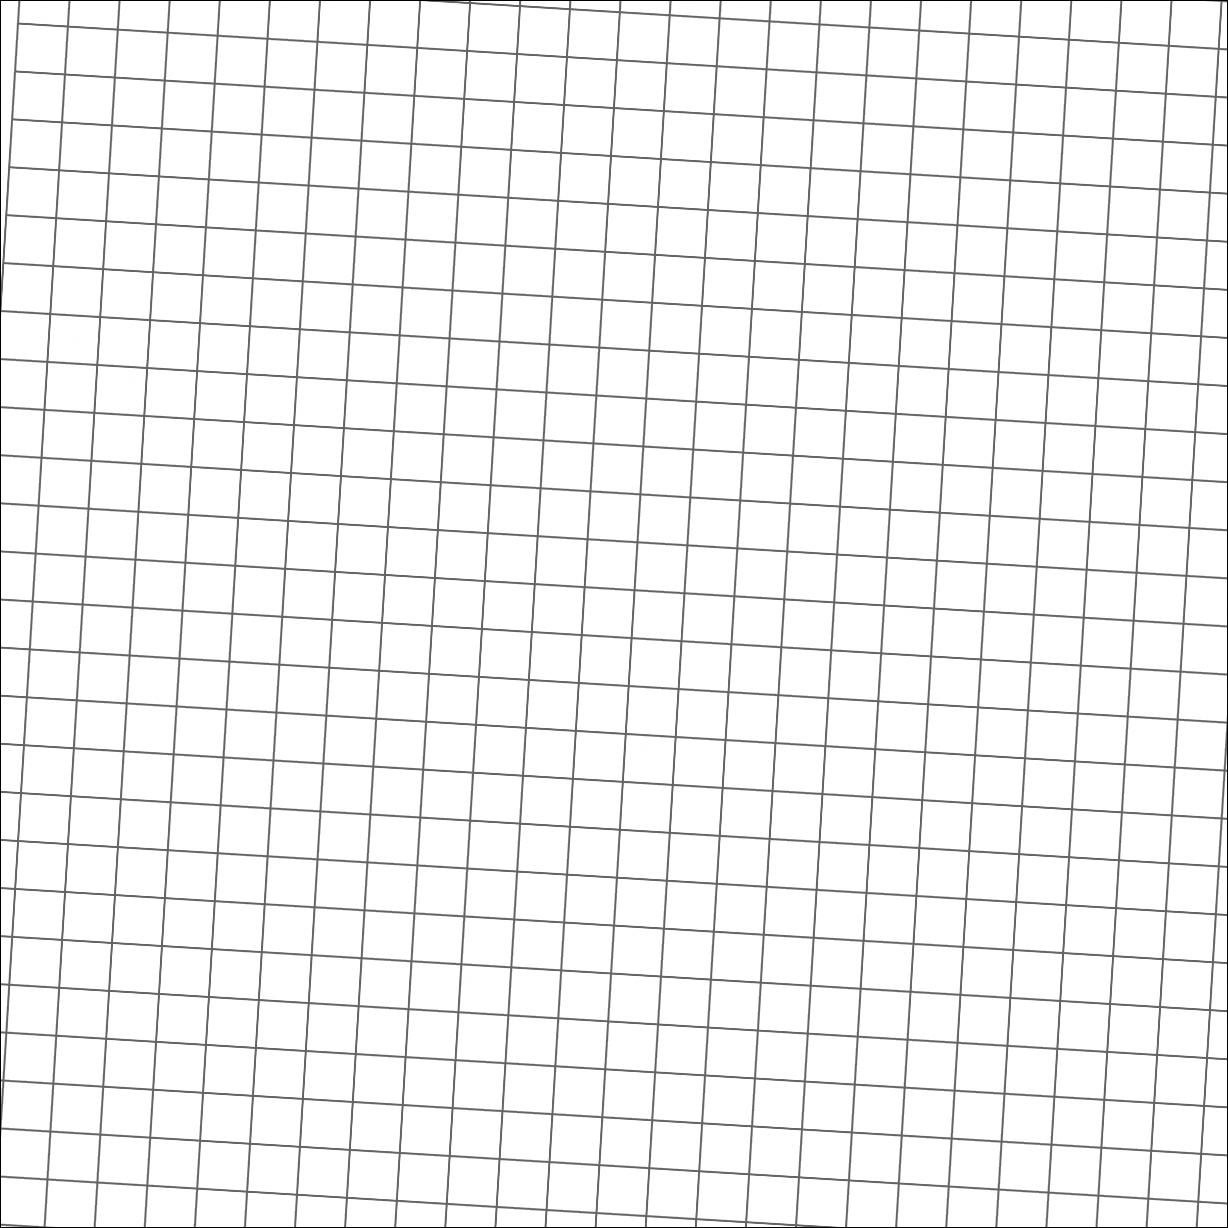 Free Printable Graph Paper! Blank Standard And Metric Graph Paper In - Free Printable Graph Paper 1 4 Inch